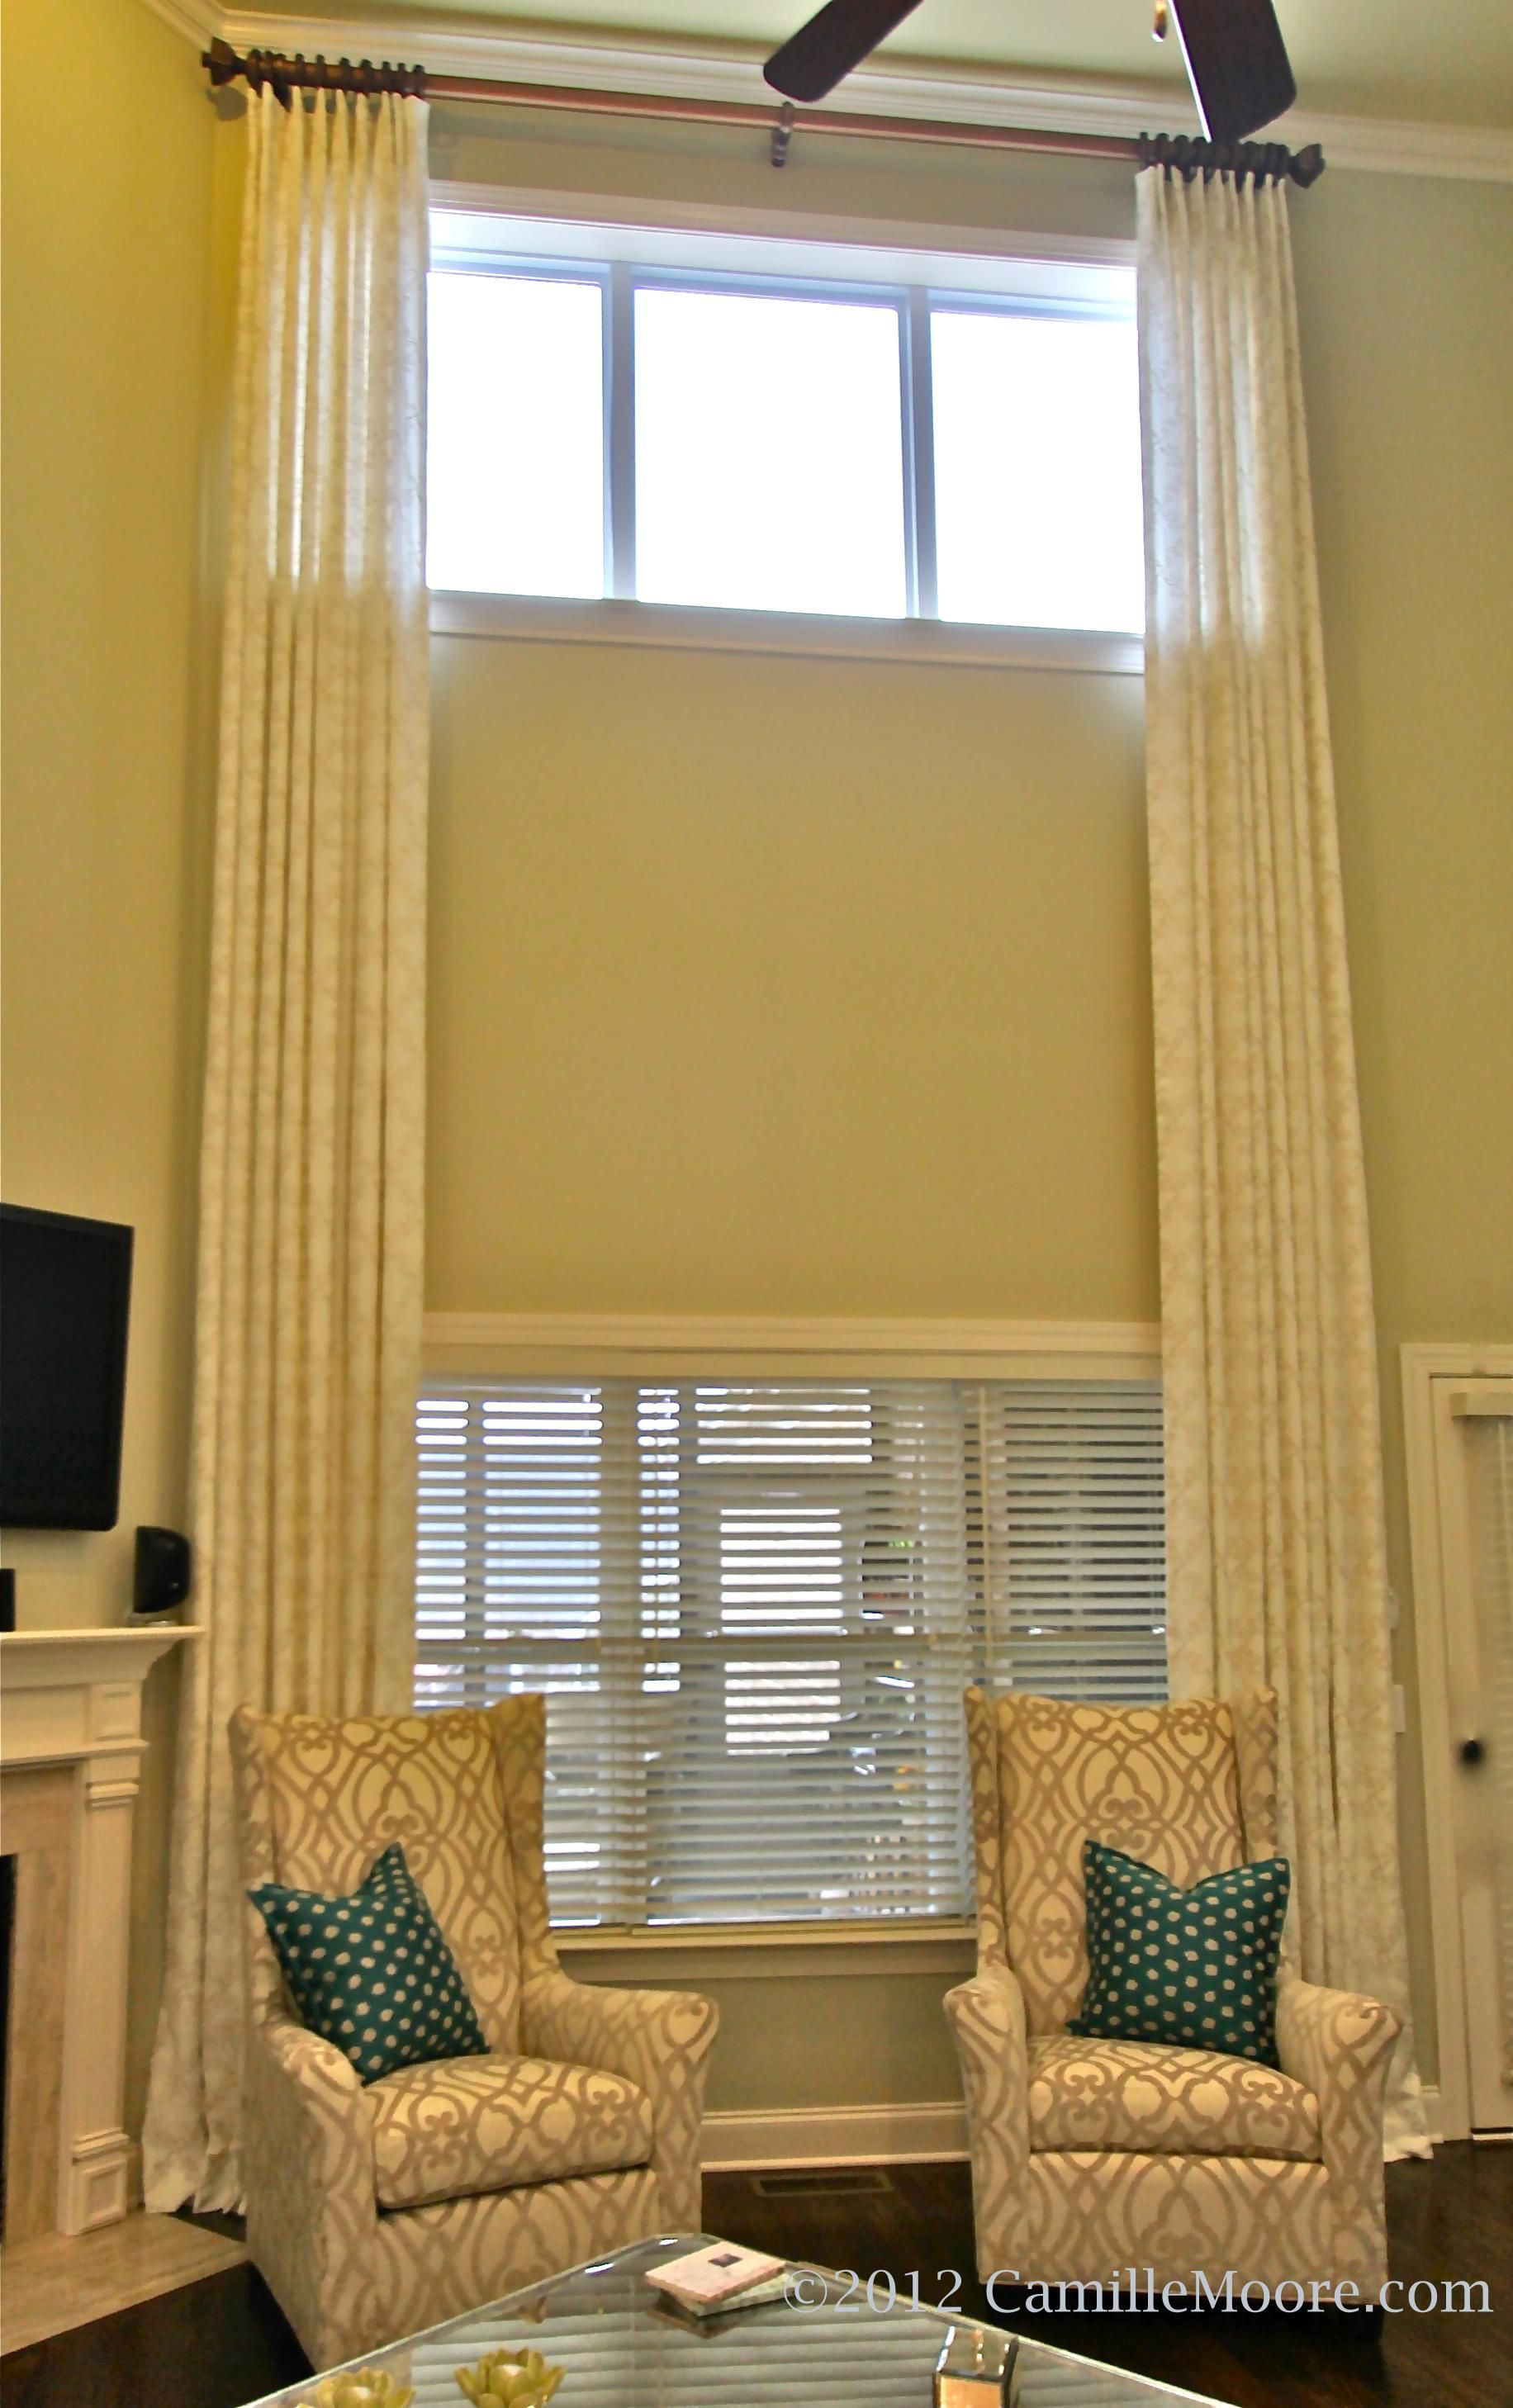 two story window treatment ideas - Google Search | Decorating our ...